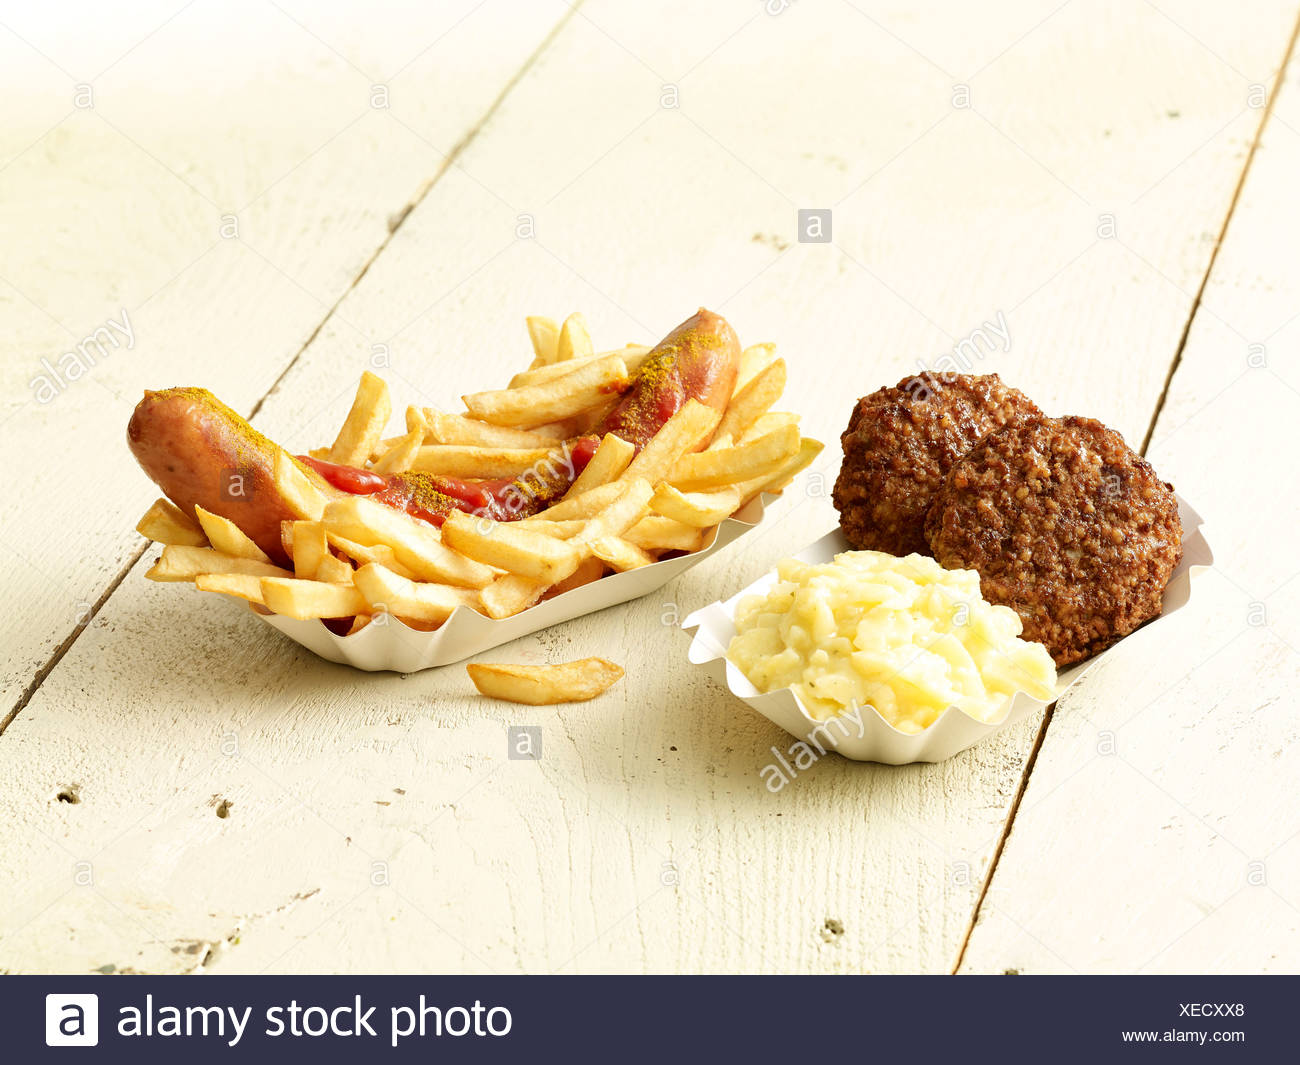 Curry sausage with French fries, two meatballs and mashed potatoes on wooden table Stock Photo